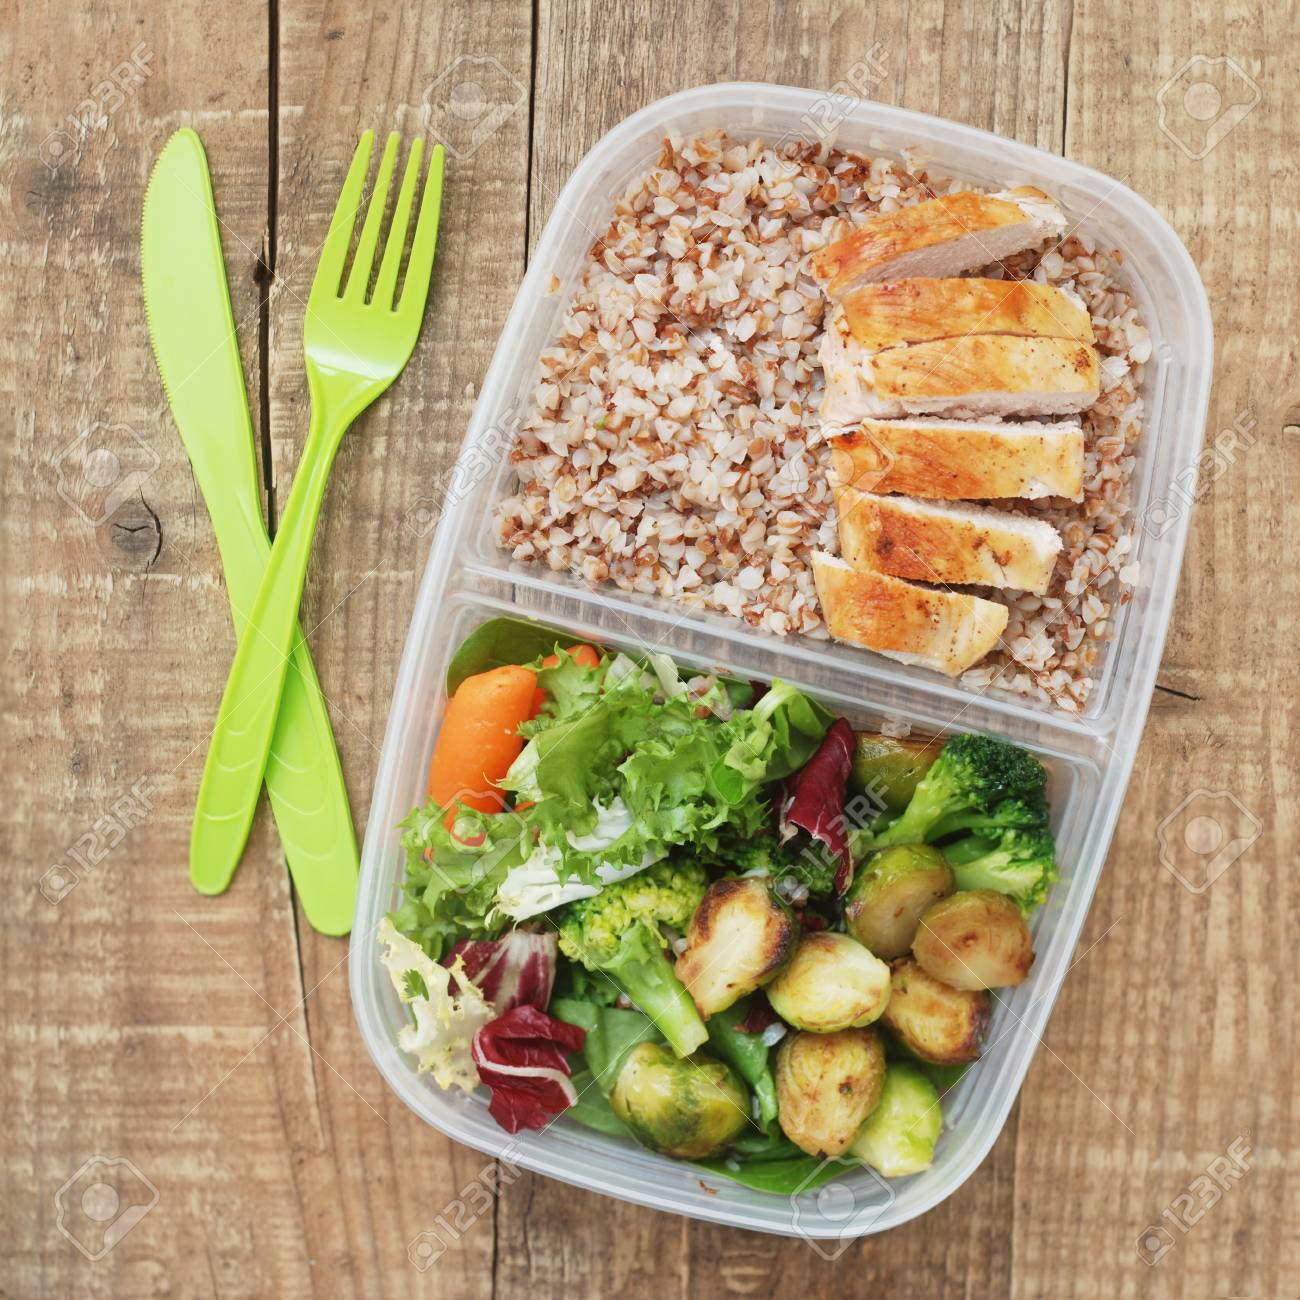 Lunch Box Healthy Food Take Away Plastic Container Buckwheat Stock Photo Picture And Royalty Free Image Image 104602337